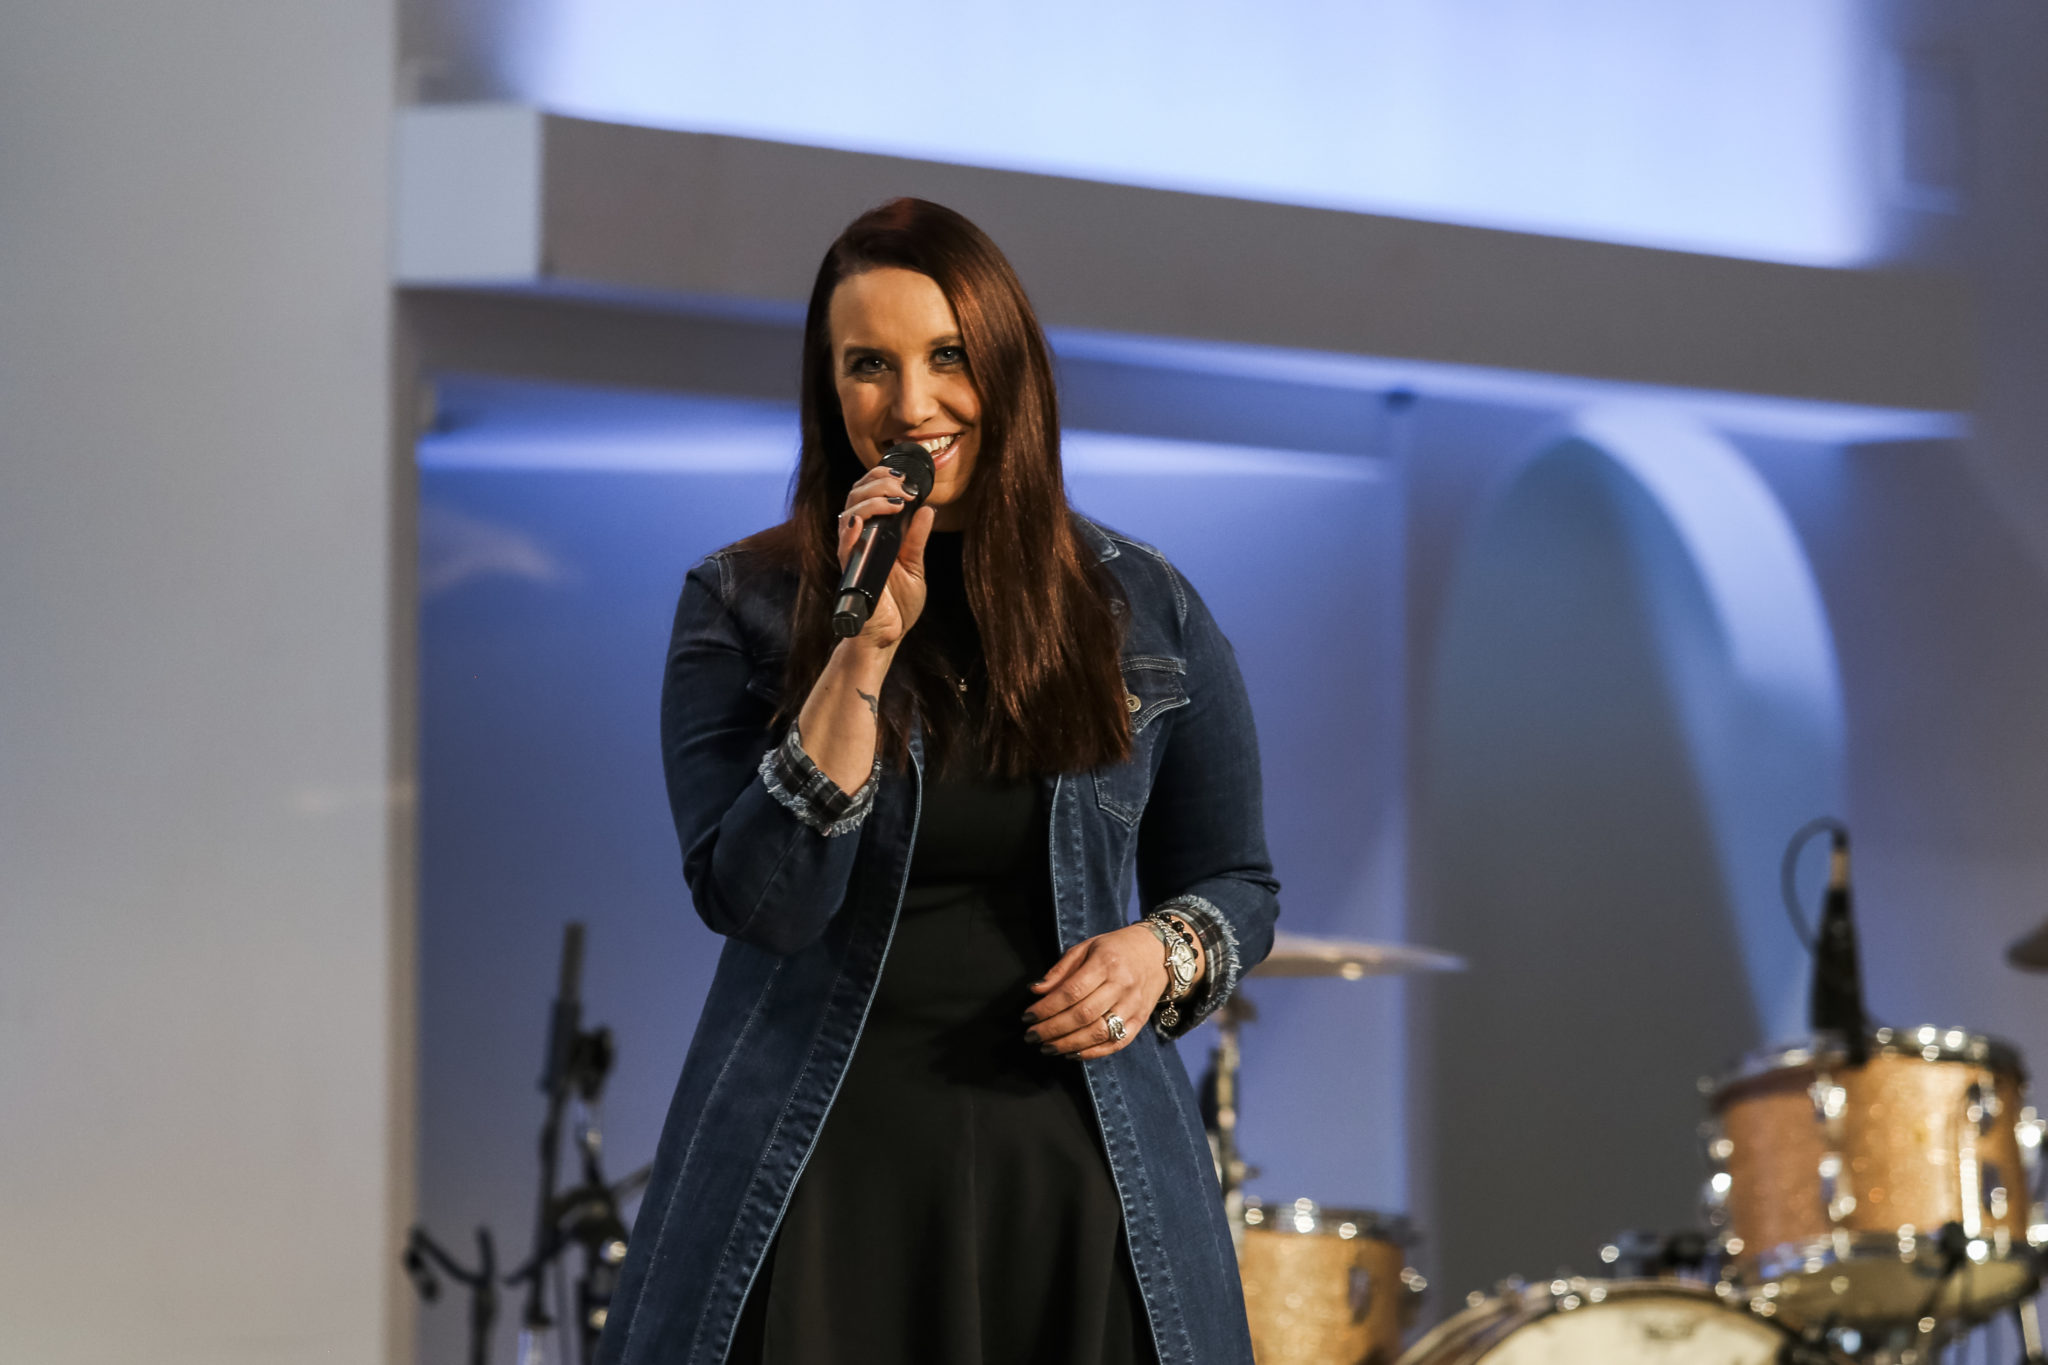 SINGER MELINDA MCGLASSON TO APPEAR ON 'HOUR OF POWER'